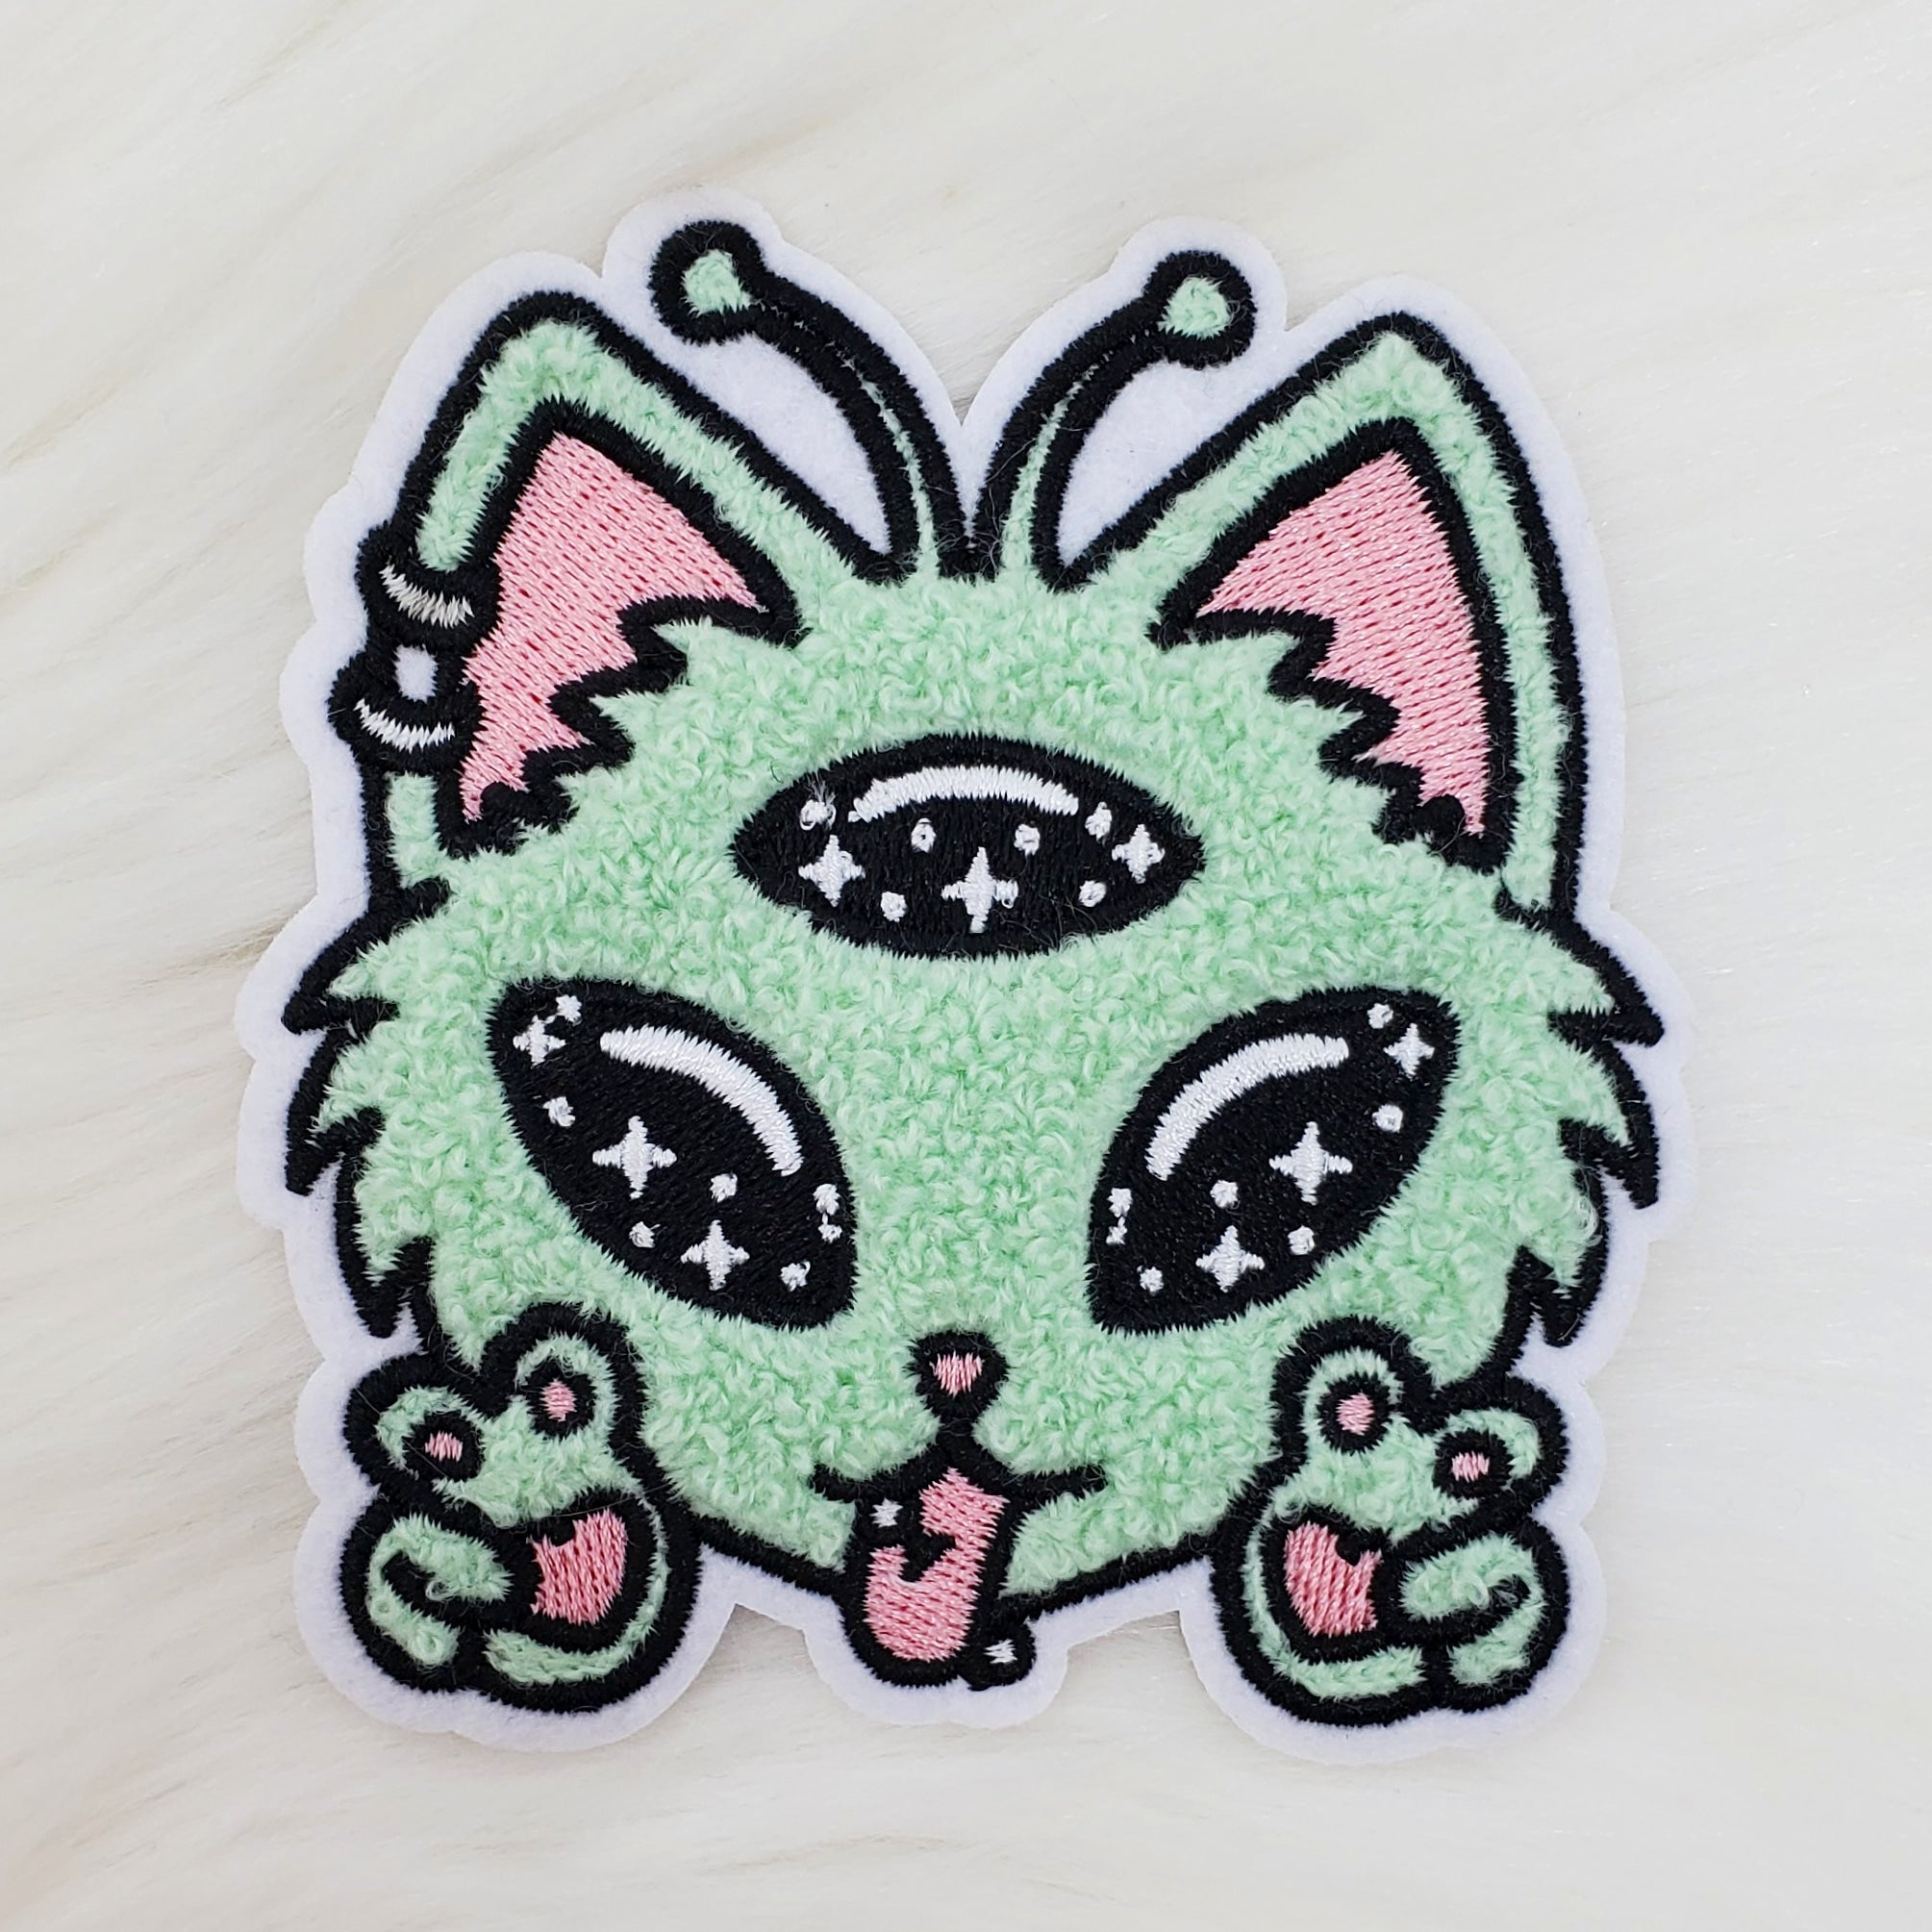 ♡ Alien Kitty Chenille Iron-On Patch ♡